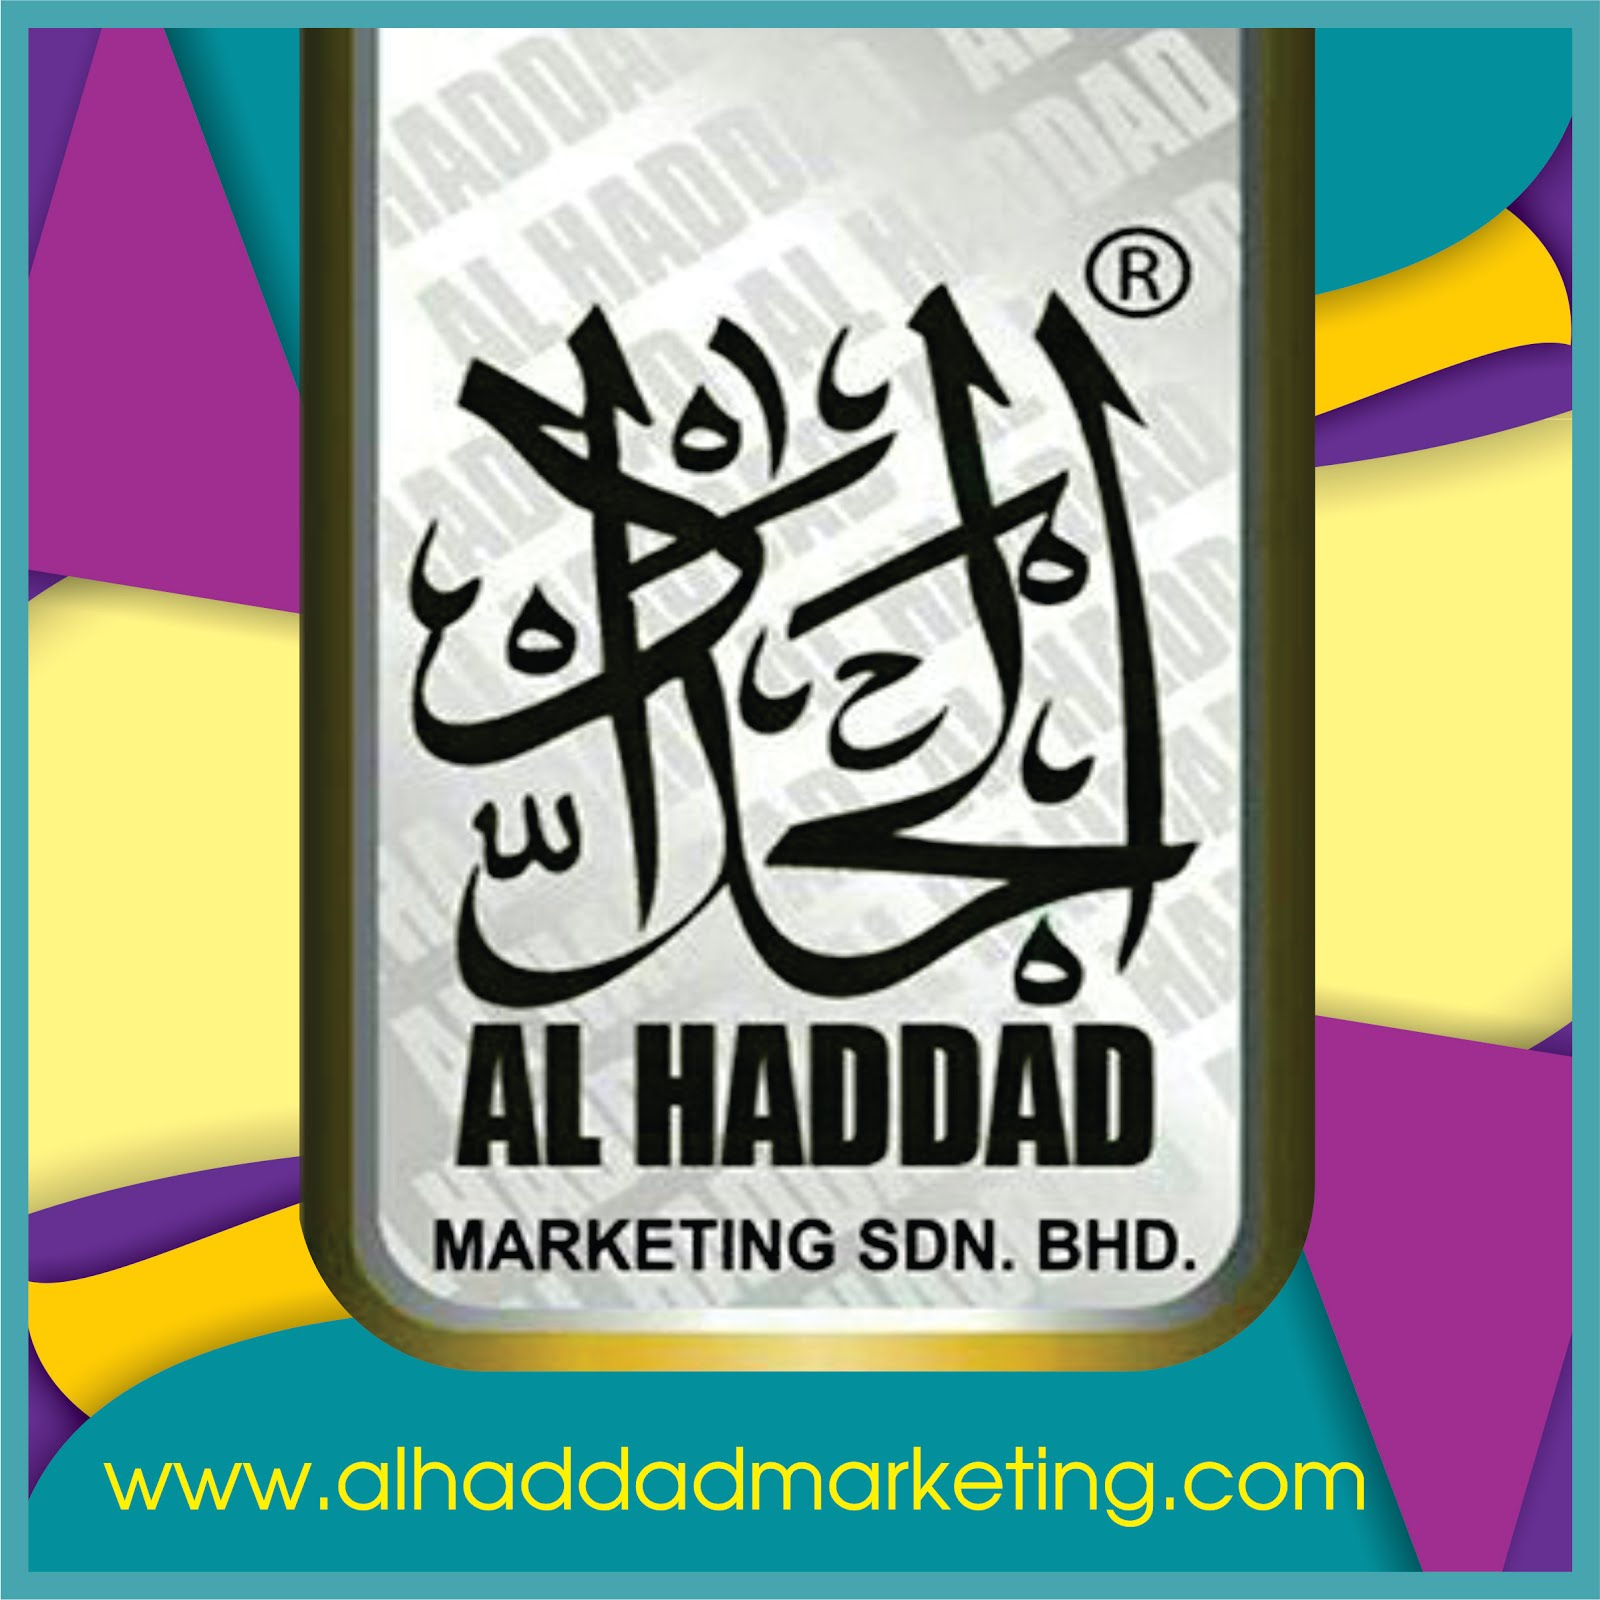 Al Haddad Marketing